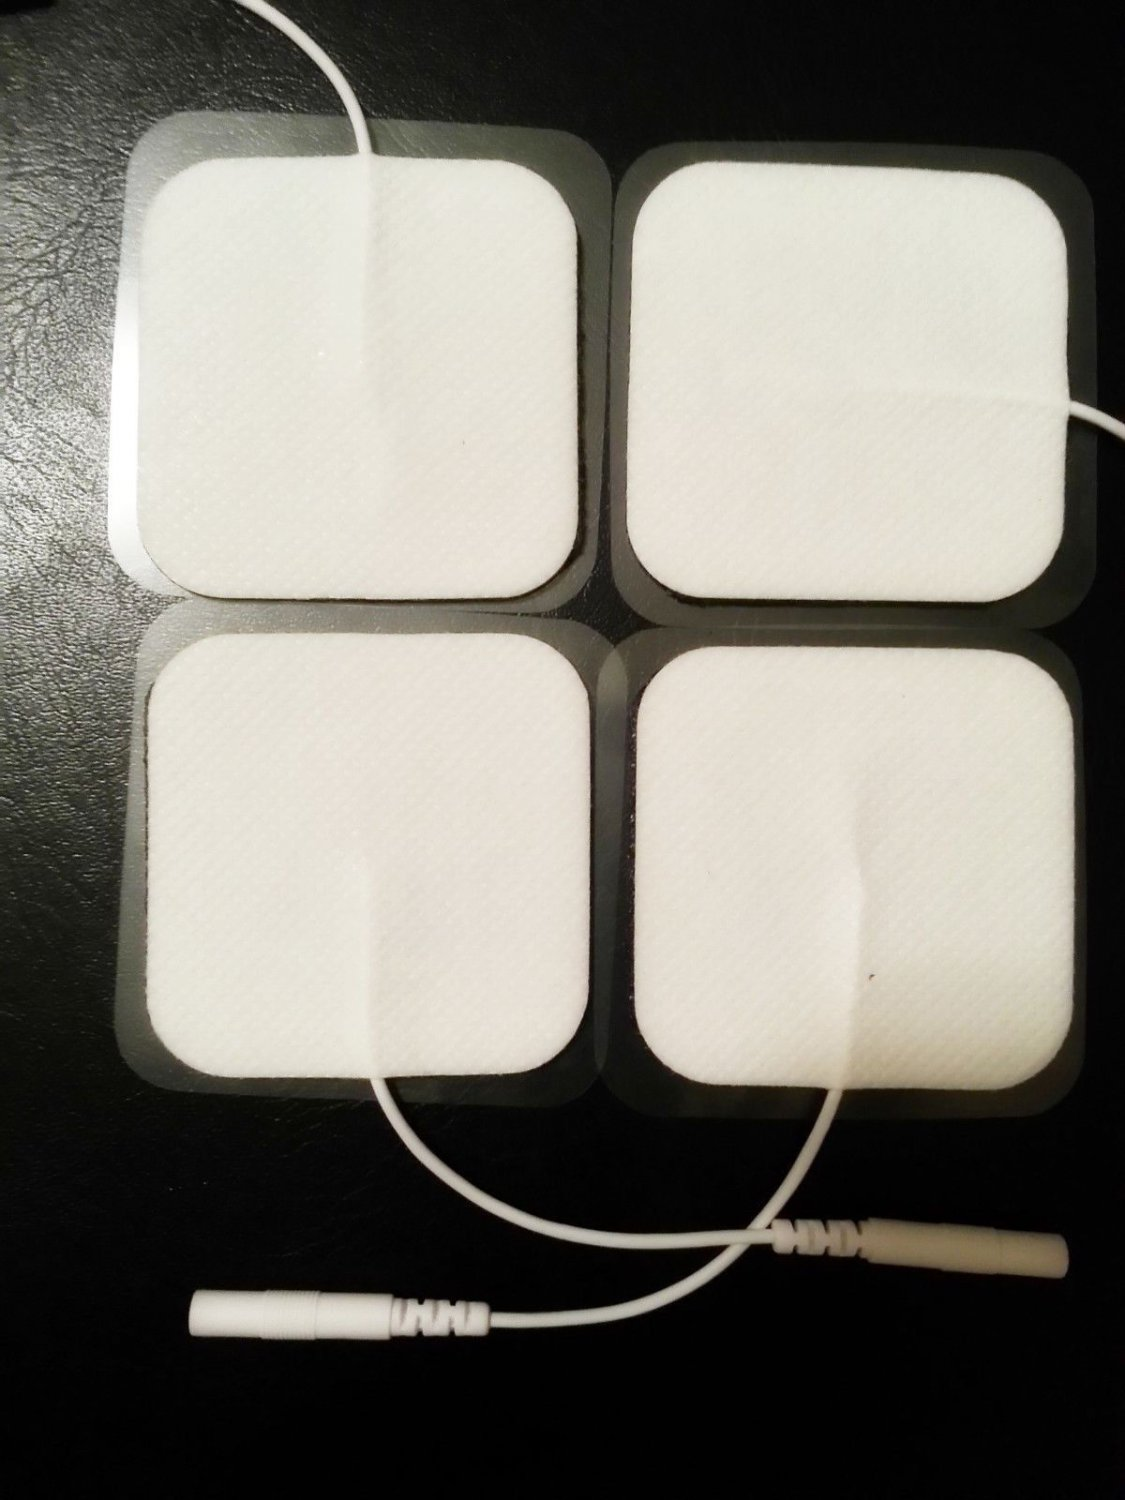 """16 pc Square Replacement Electrode Pads 2""""x2"""" for Compex Muscle Stimulator Emp"""